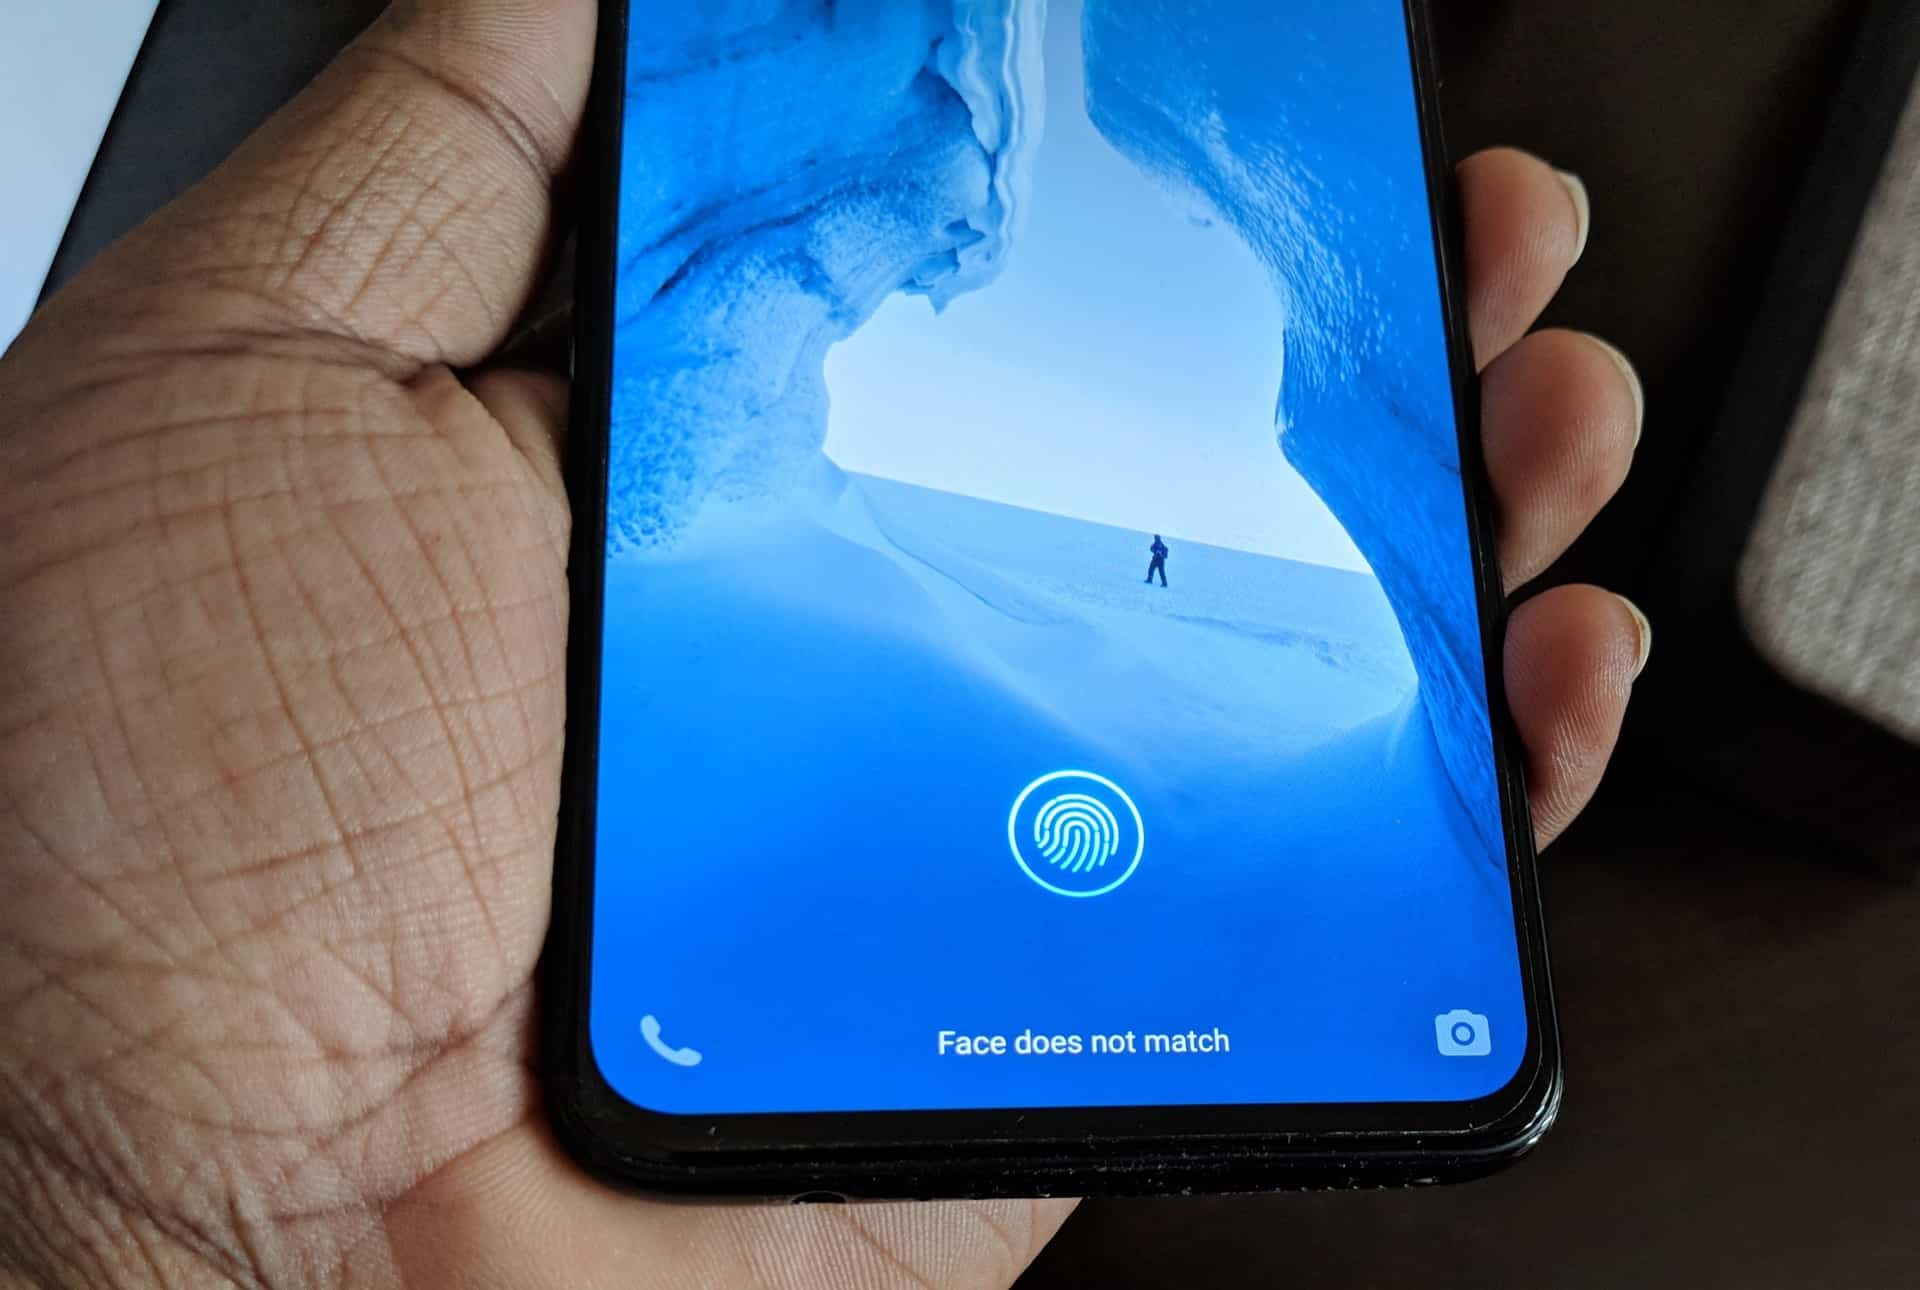 Fingerprint scanner on Phones: History and Evolution, but do we really need that? - 2